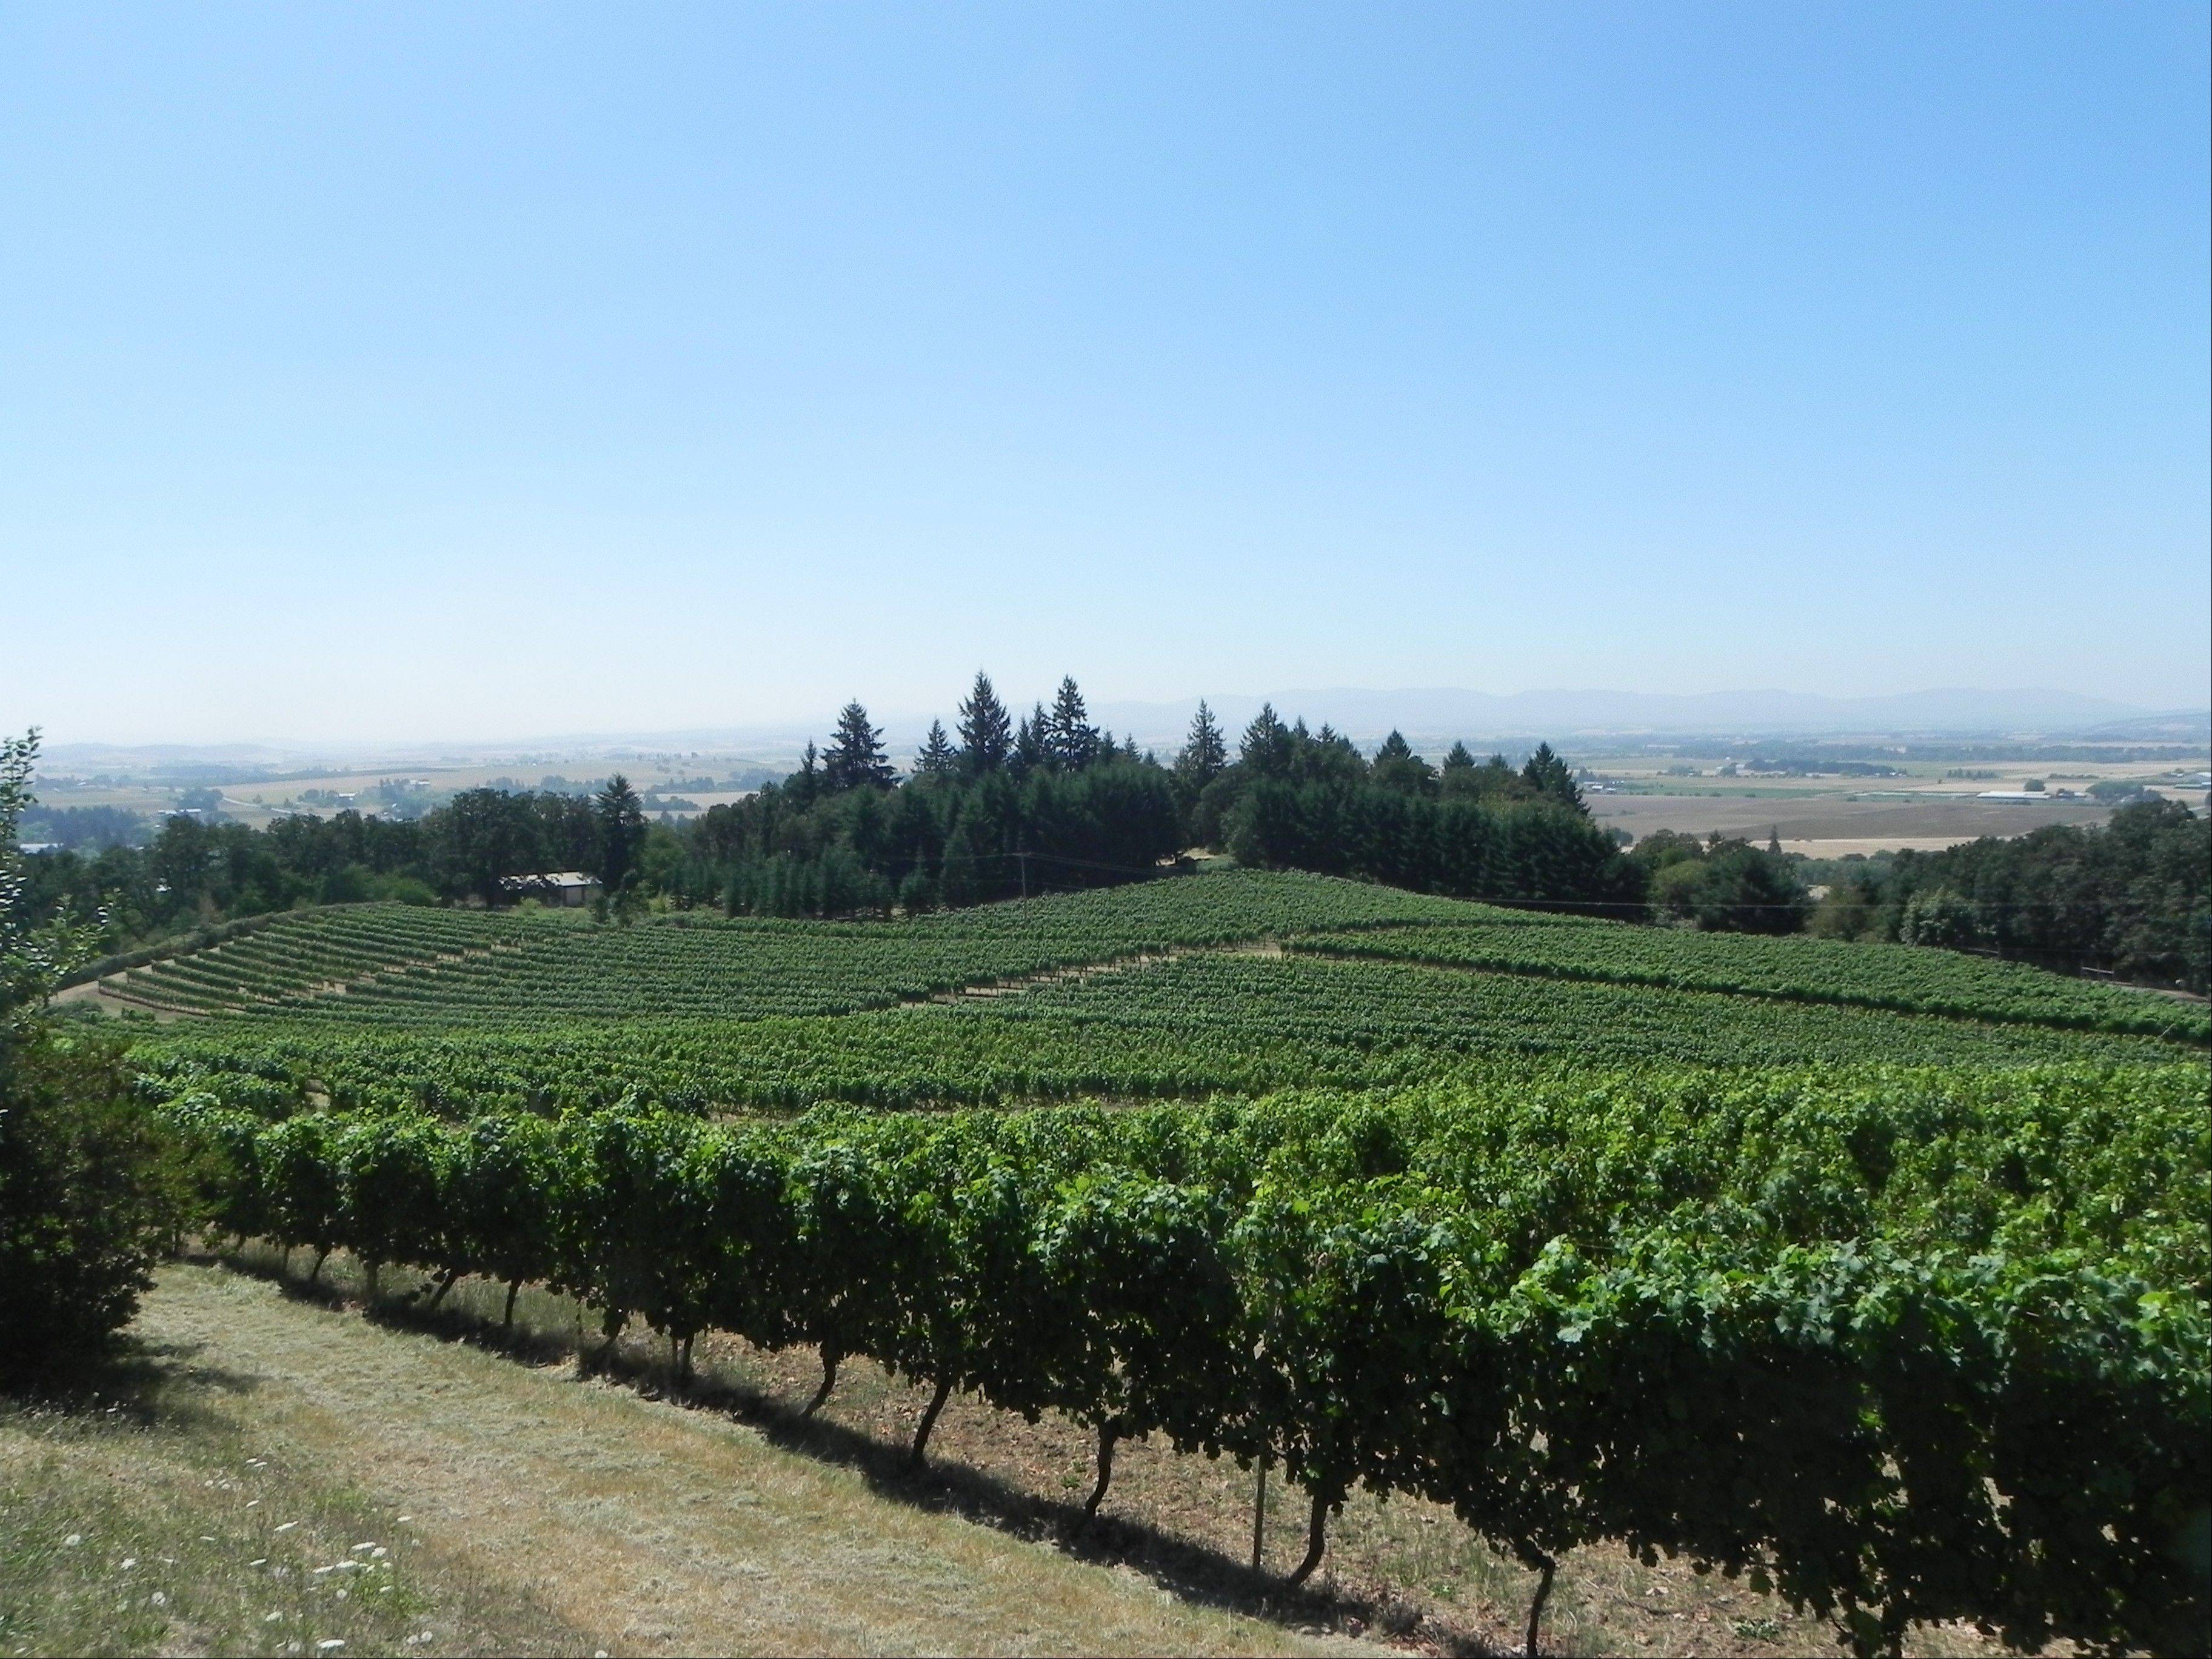 Vines spill down toward the Willamette Valley at Amity Vineyards in Amity, Ore.